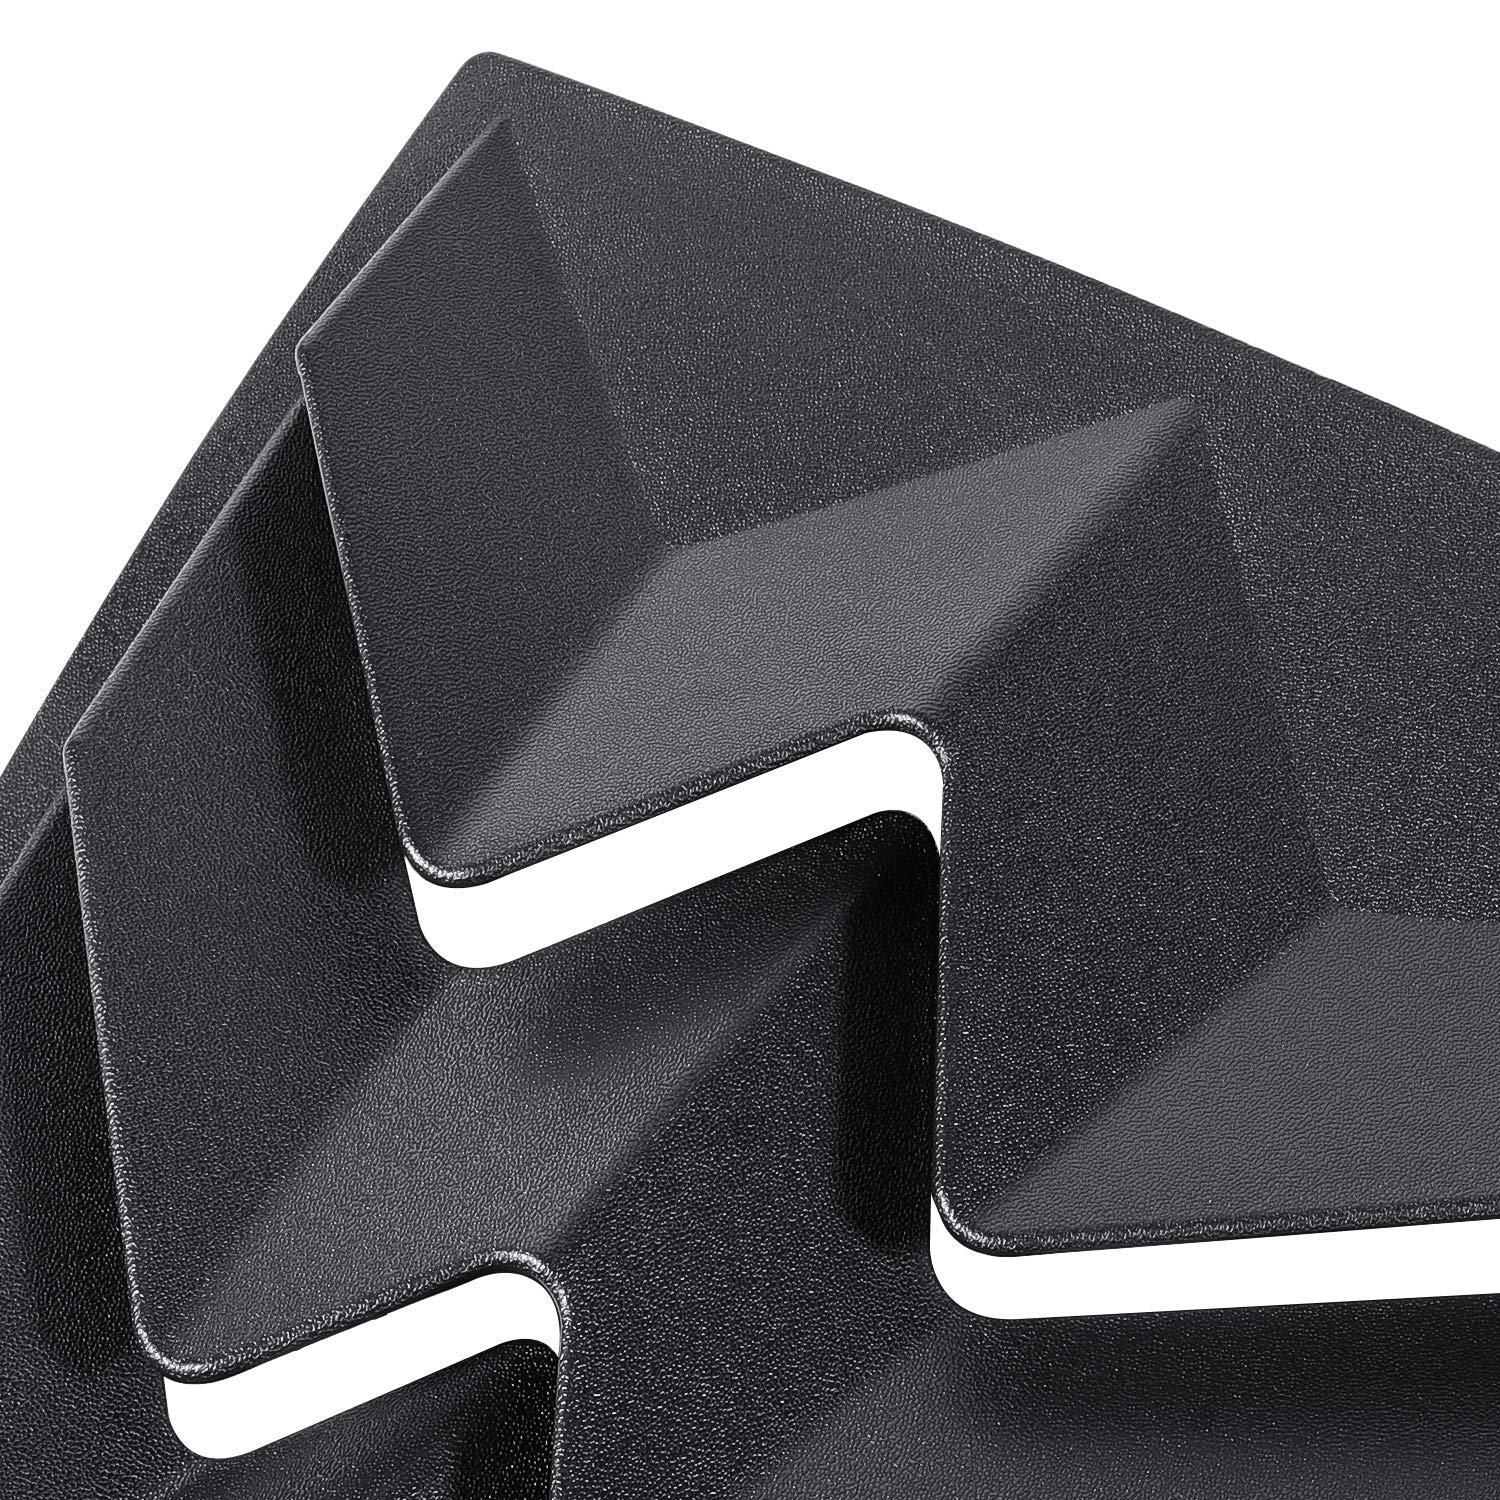 Sunluway for Dodge Challenger 2008-2019 Quarter Side Window Scoop Louvers ABS Window Visor Cover Sun Rain Shade Vent